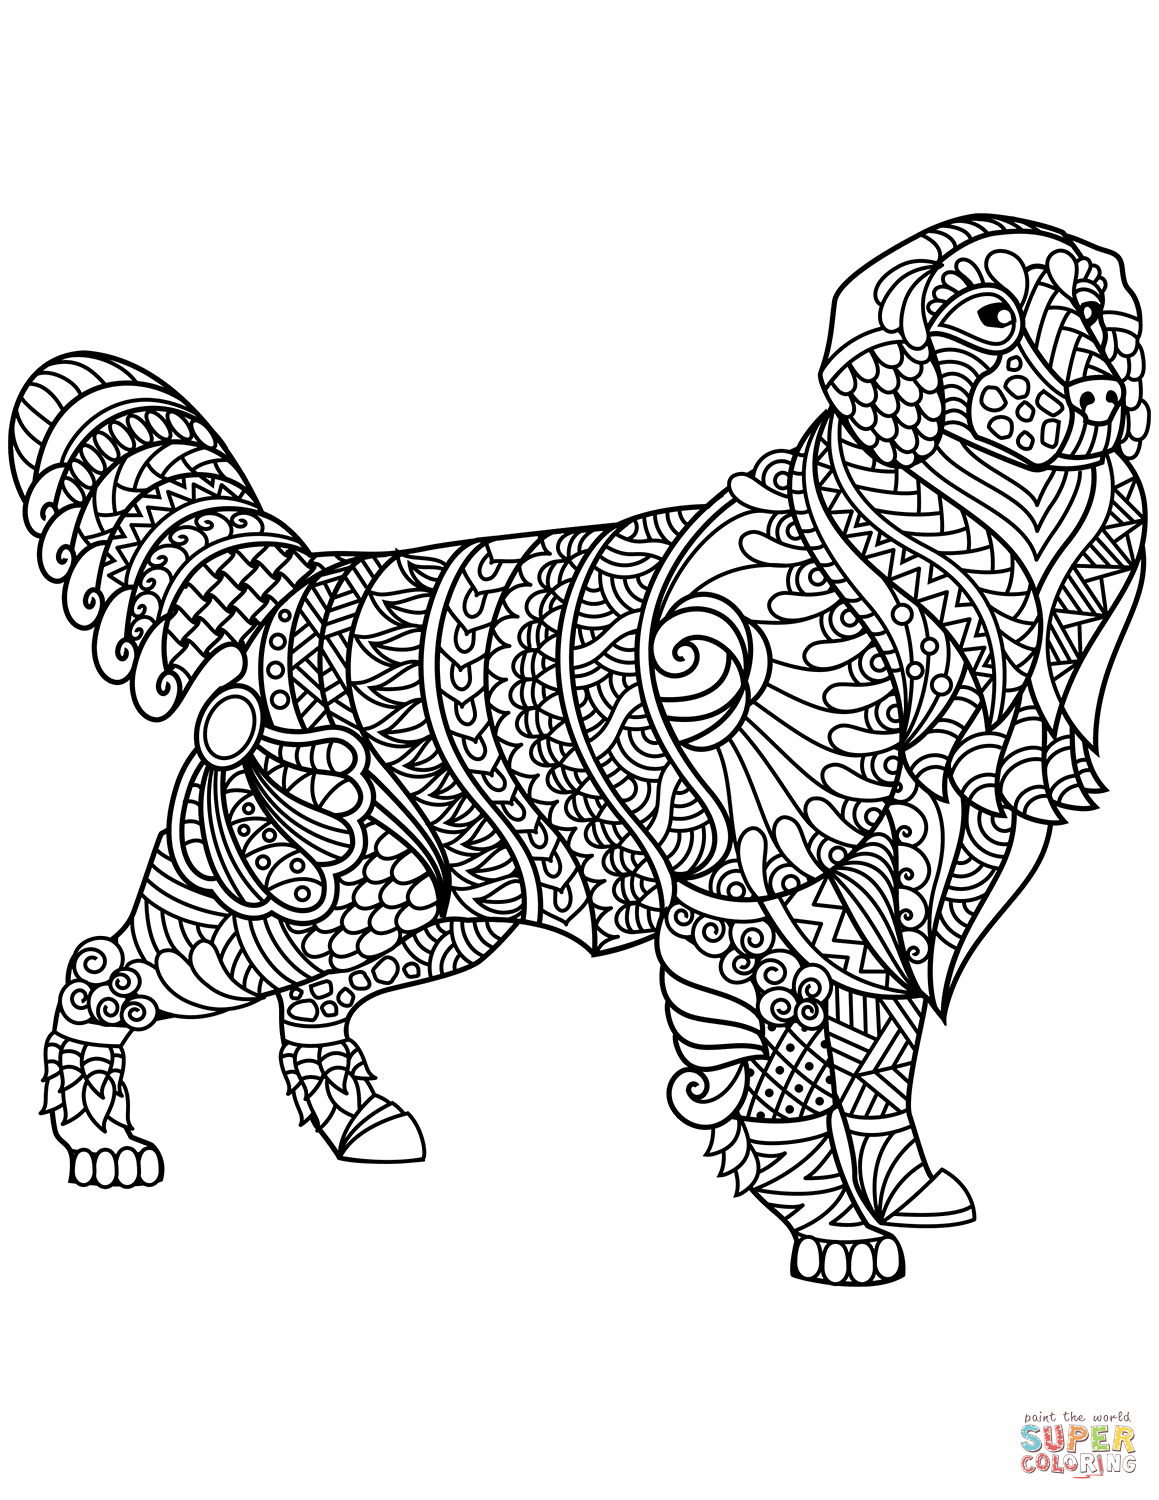 golden retriever coloring page golden retriever drawing at getdrawings free download retriever golden page coloring